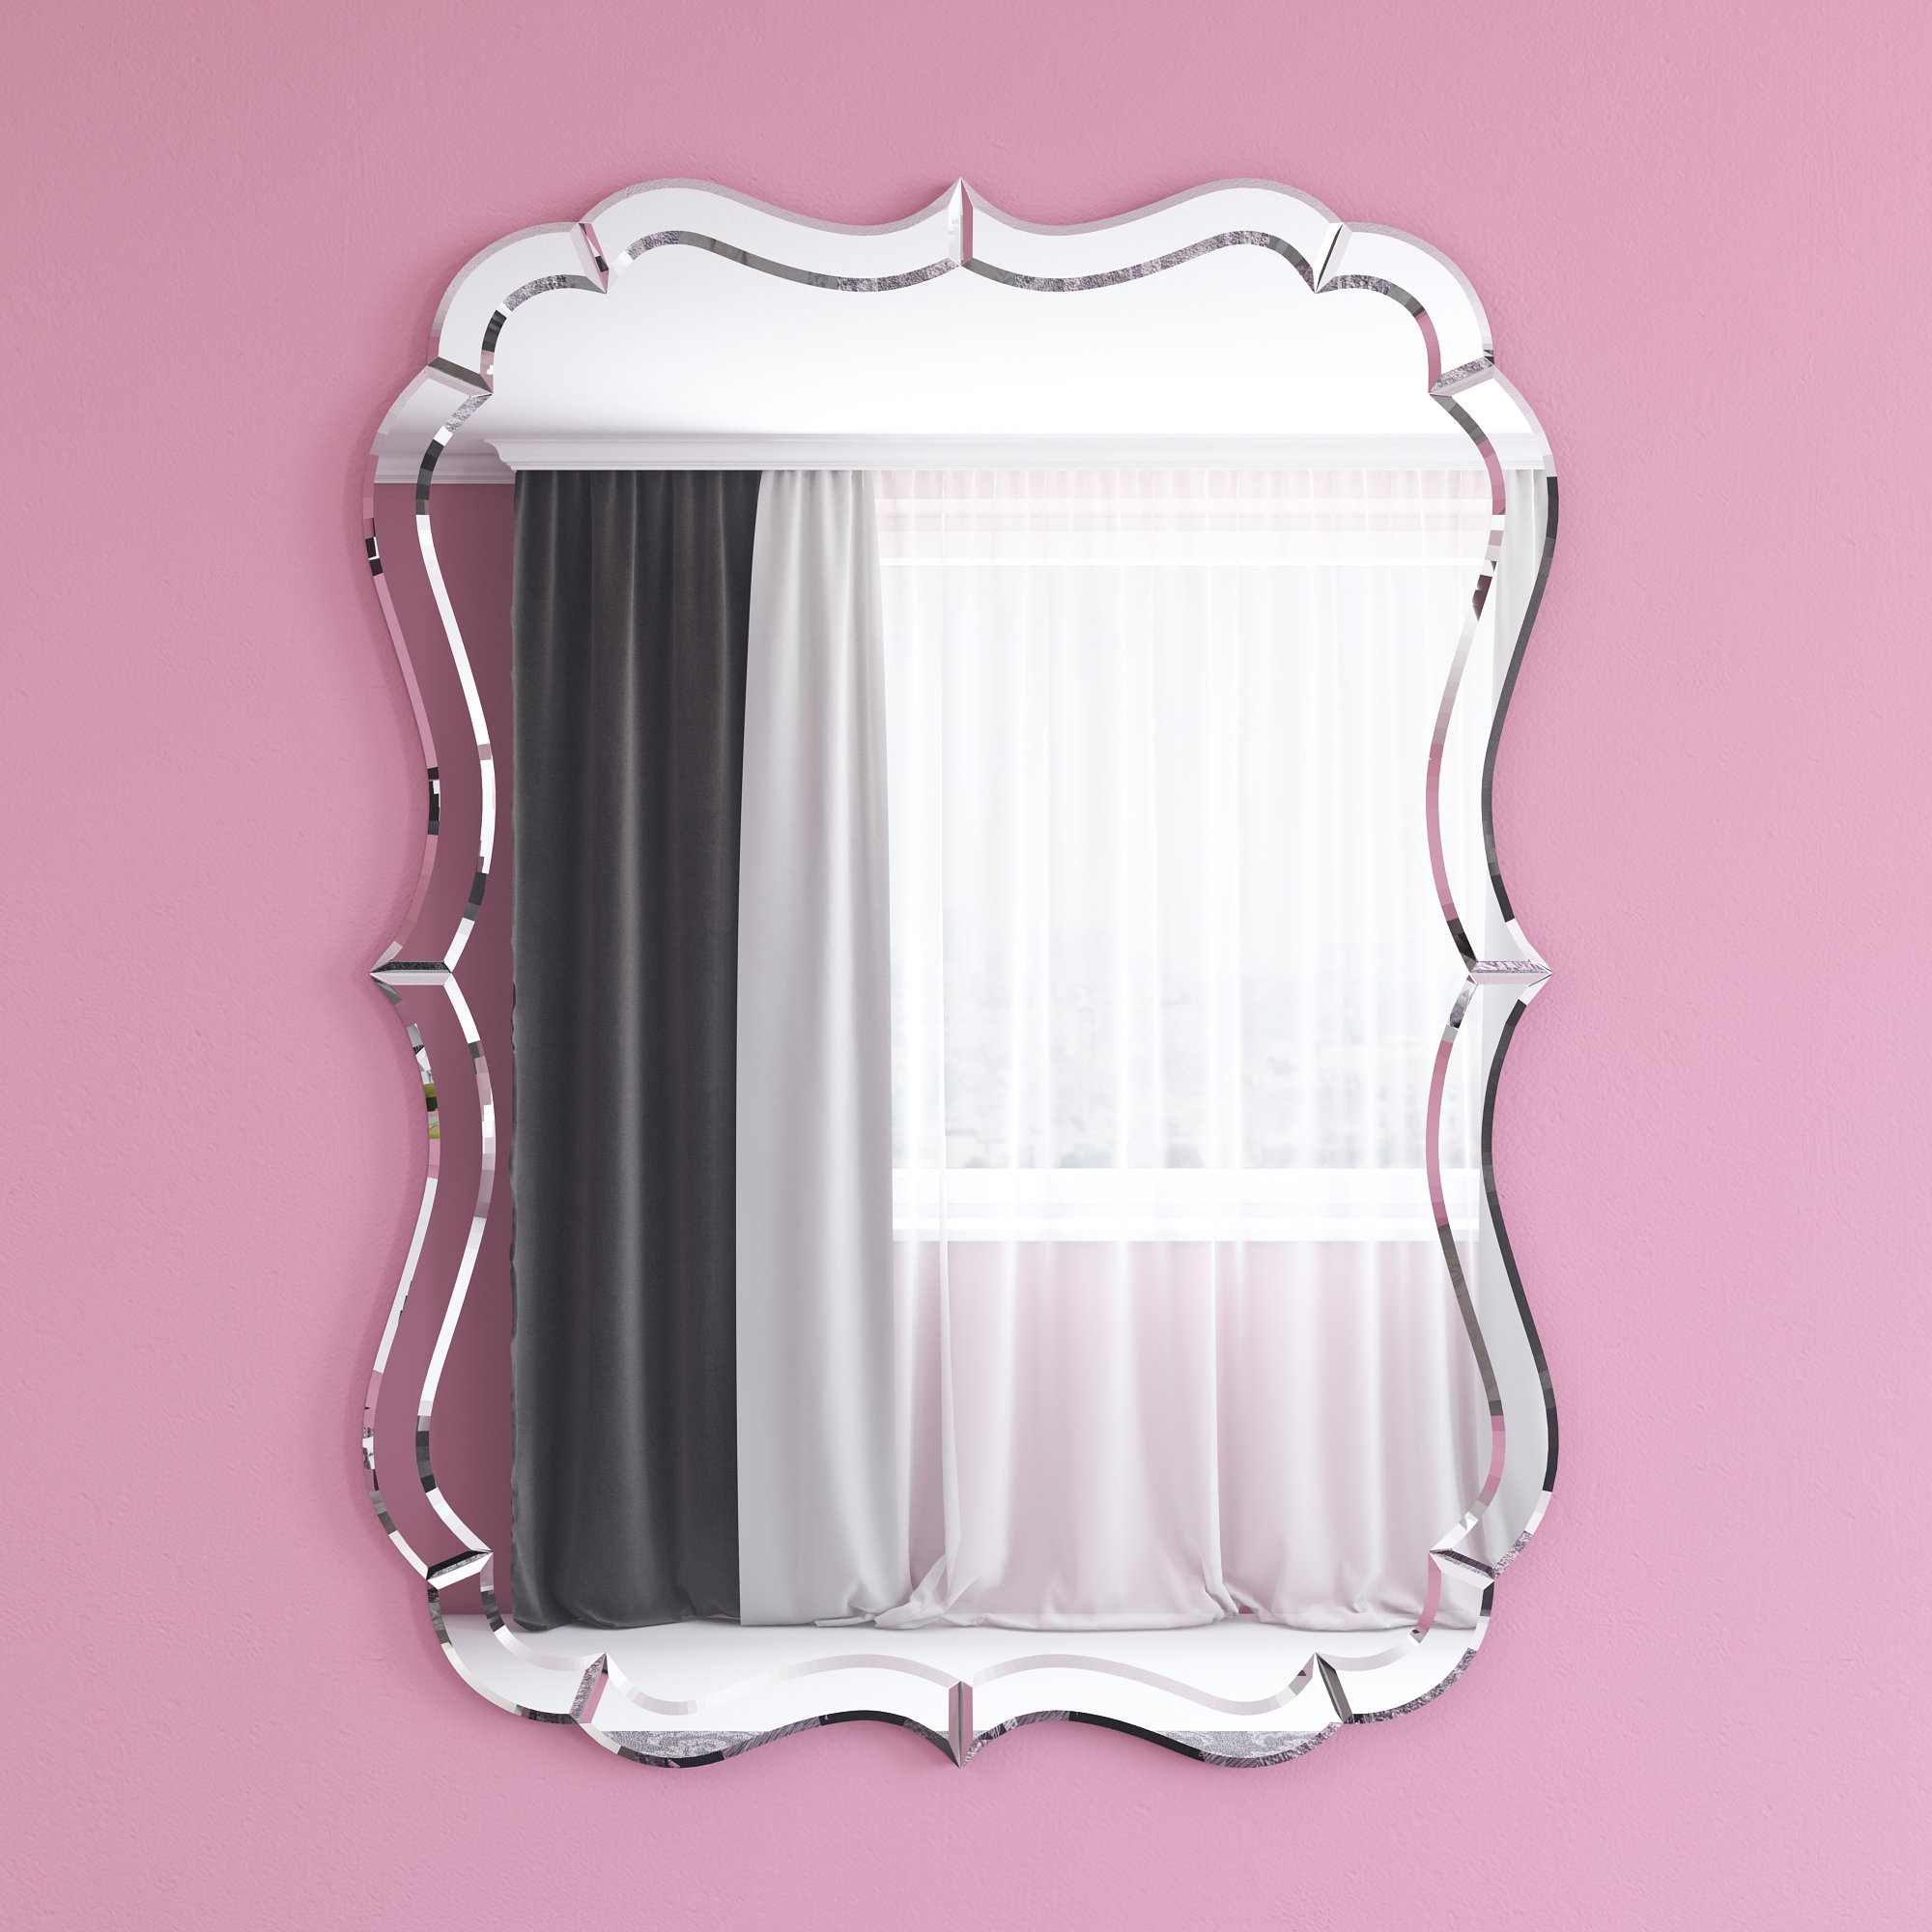 Tolya Accent Mirror With Egor Accent Mirrors (View 14 of 30)